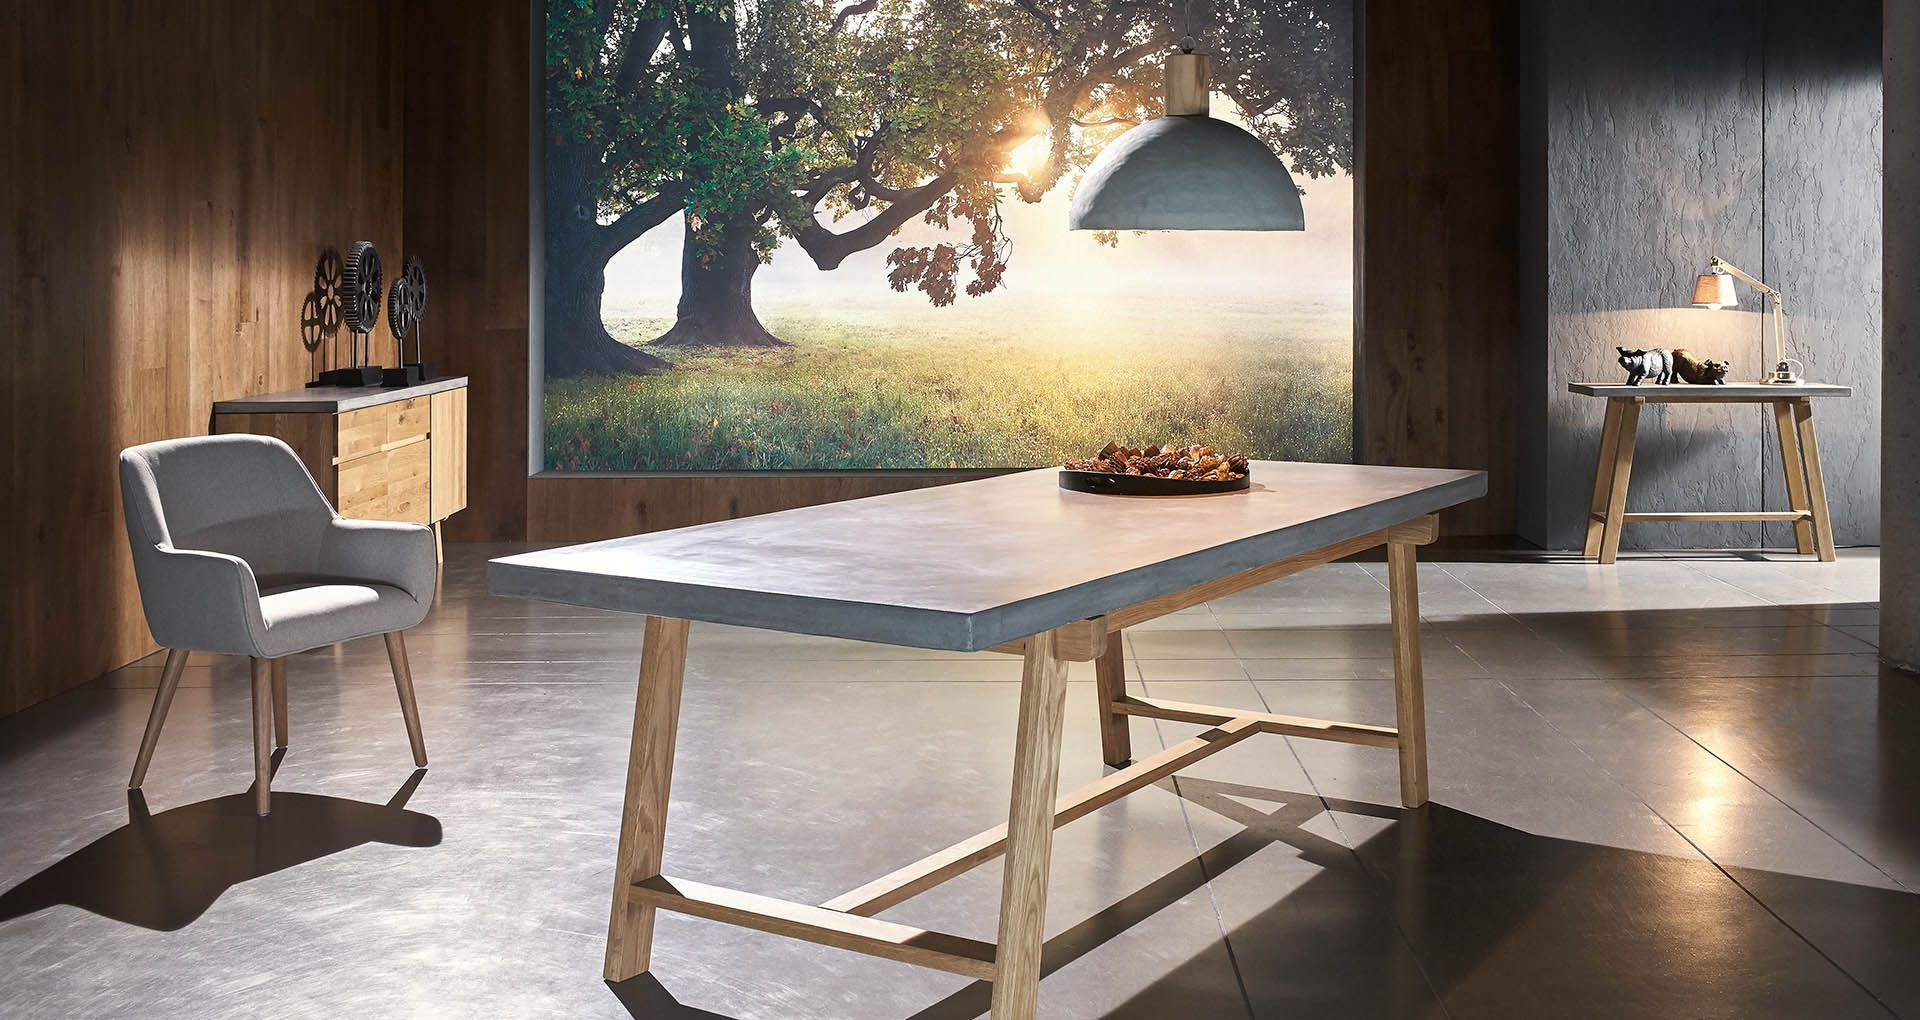 London Dining Tables Products Nick Scali Furniture Concrete Dining Table Dining Table Table